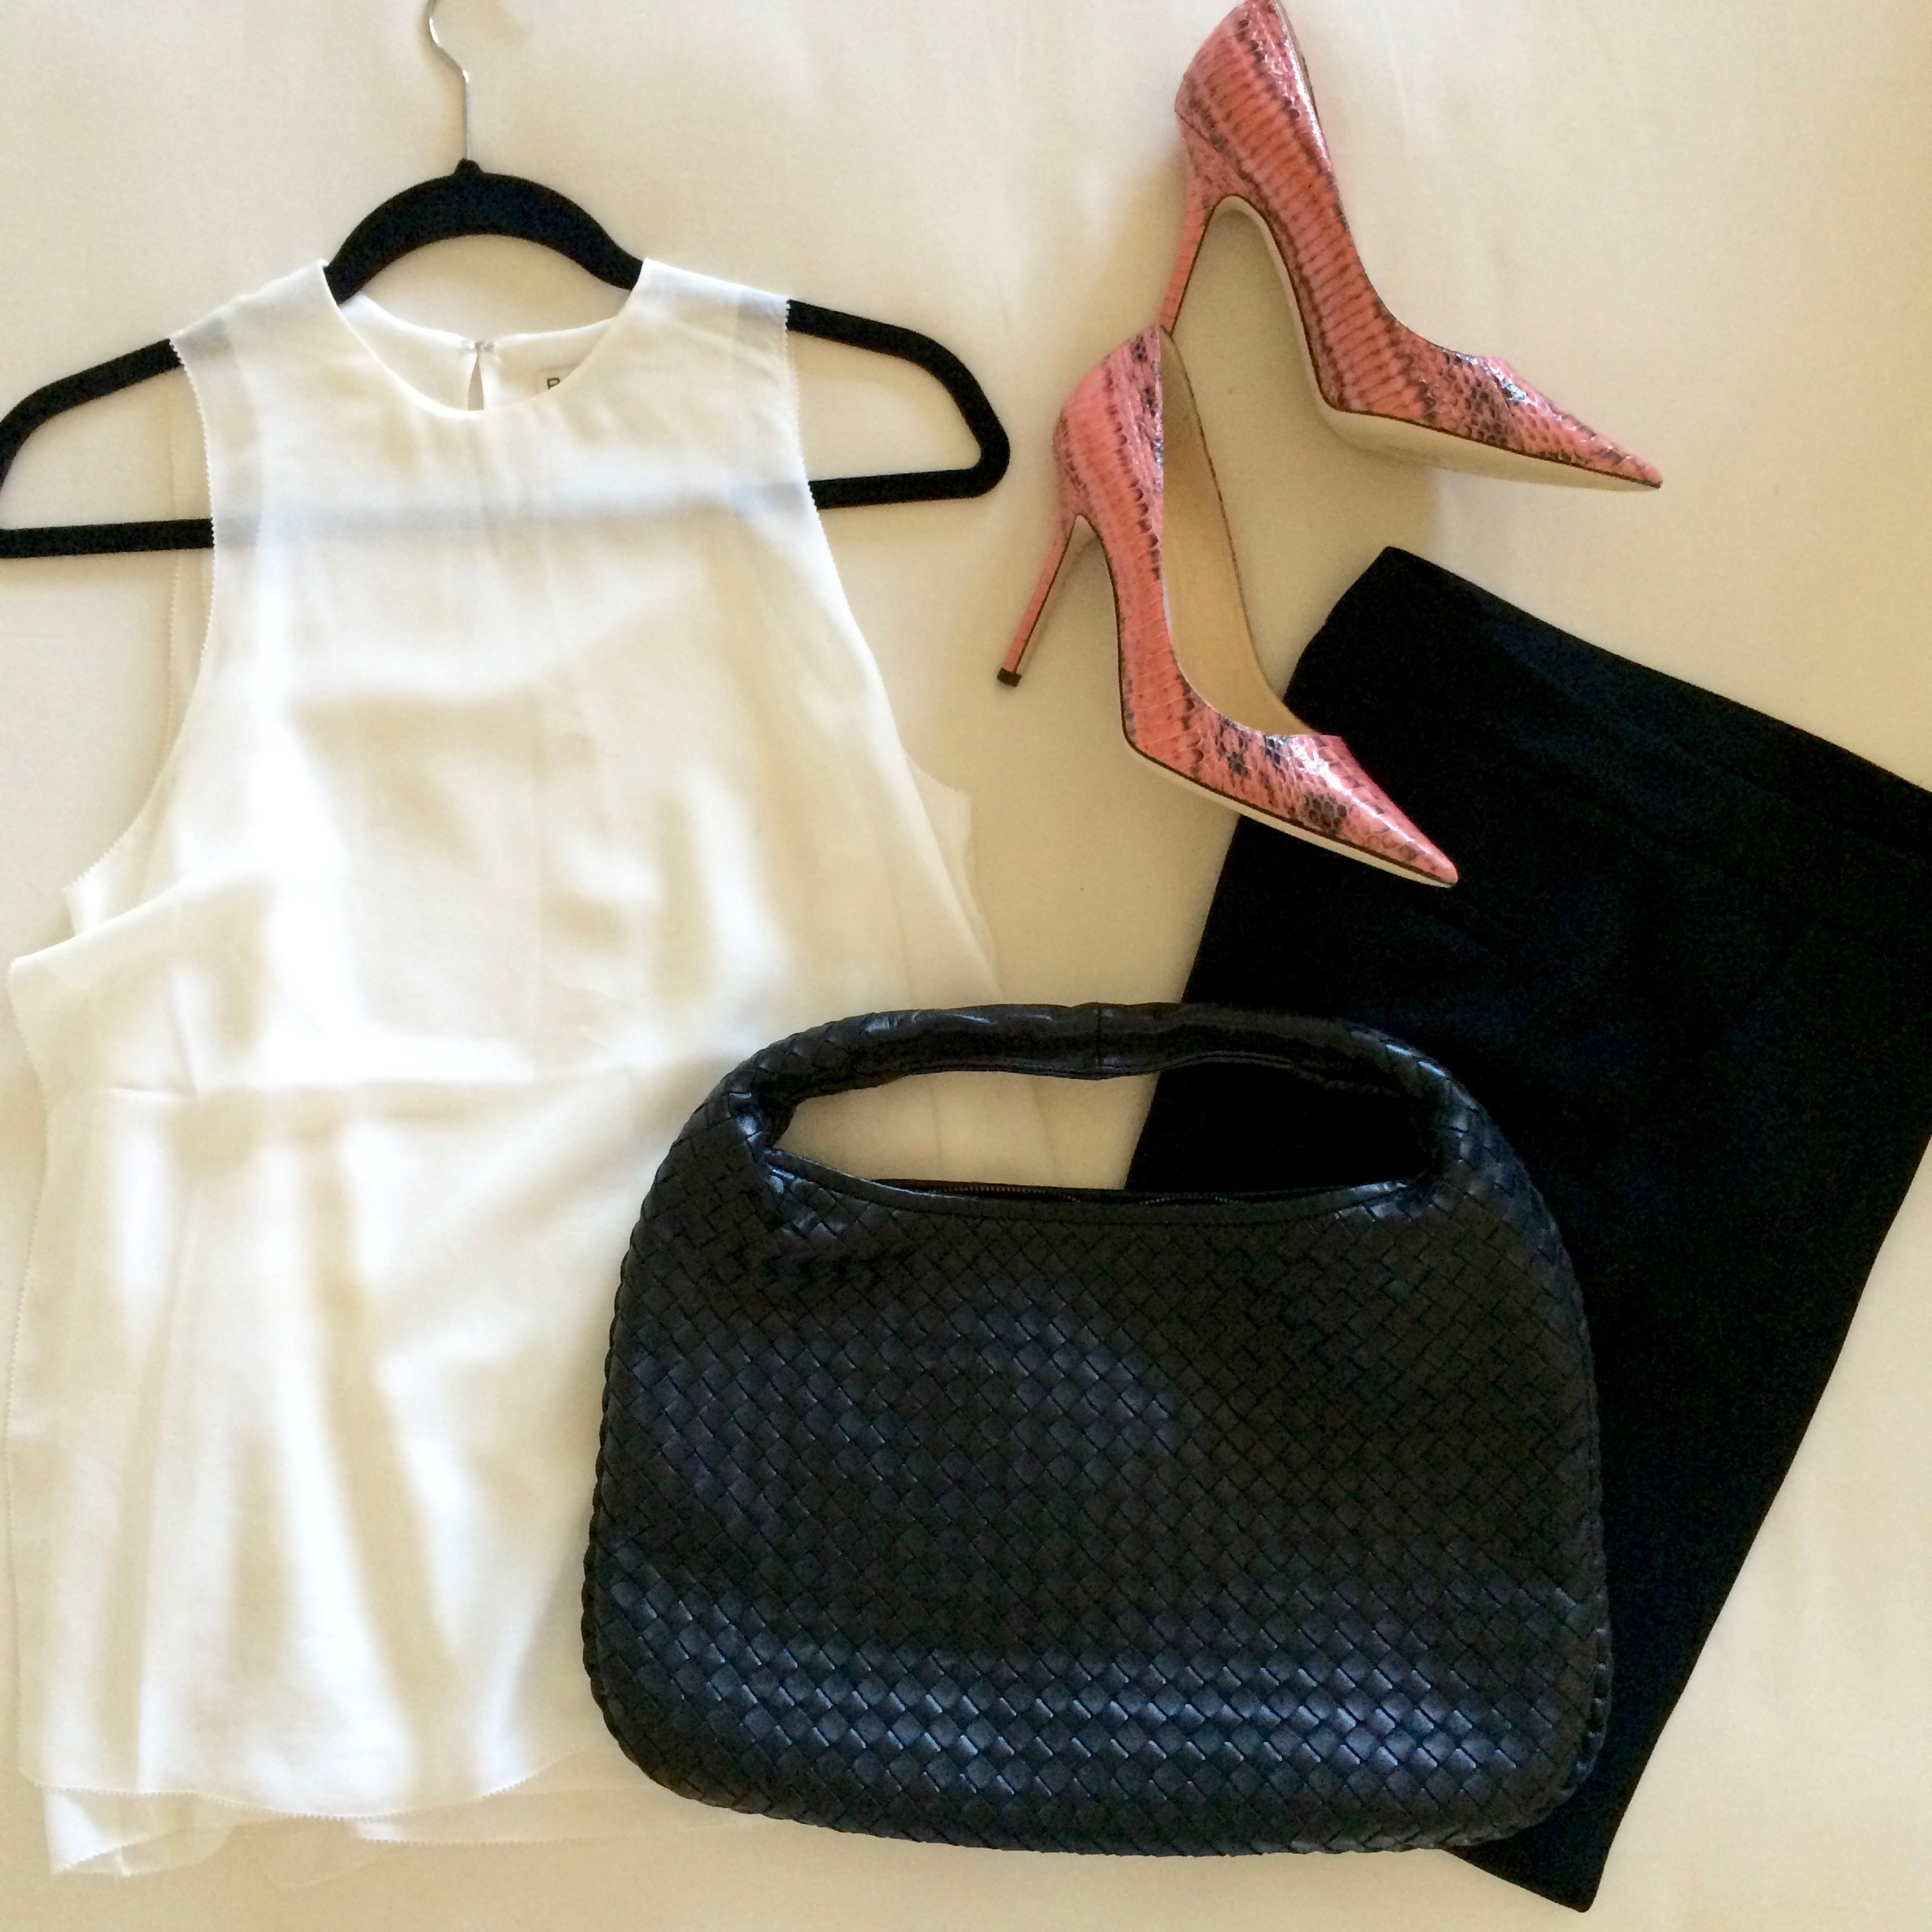 snake print heels and white blouse.jpg